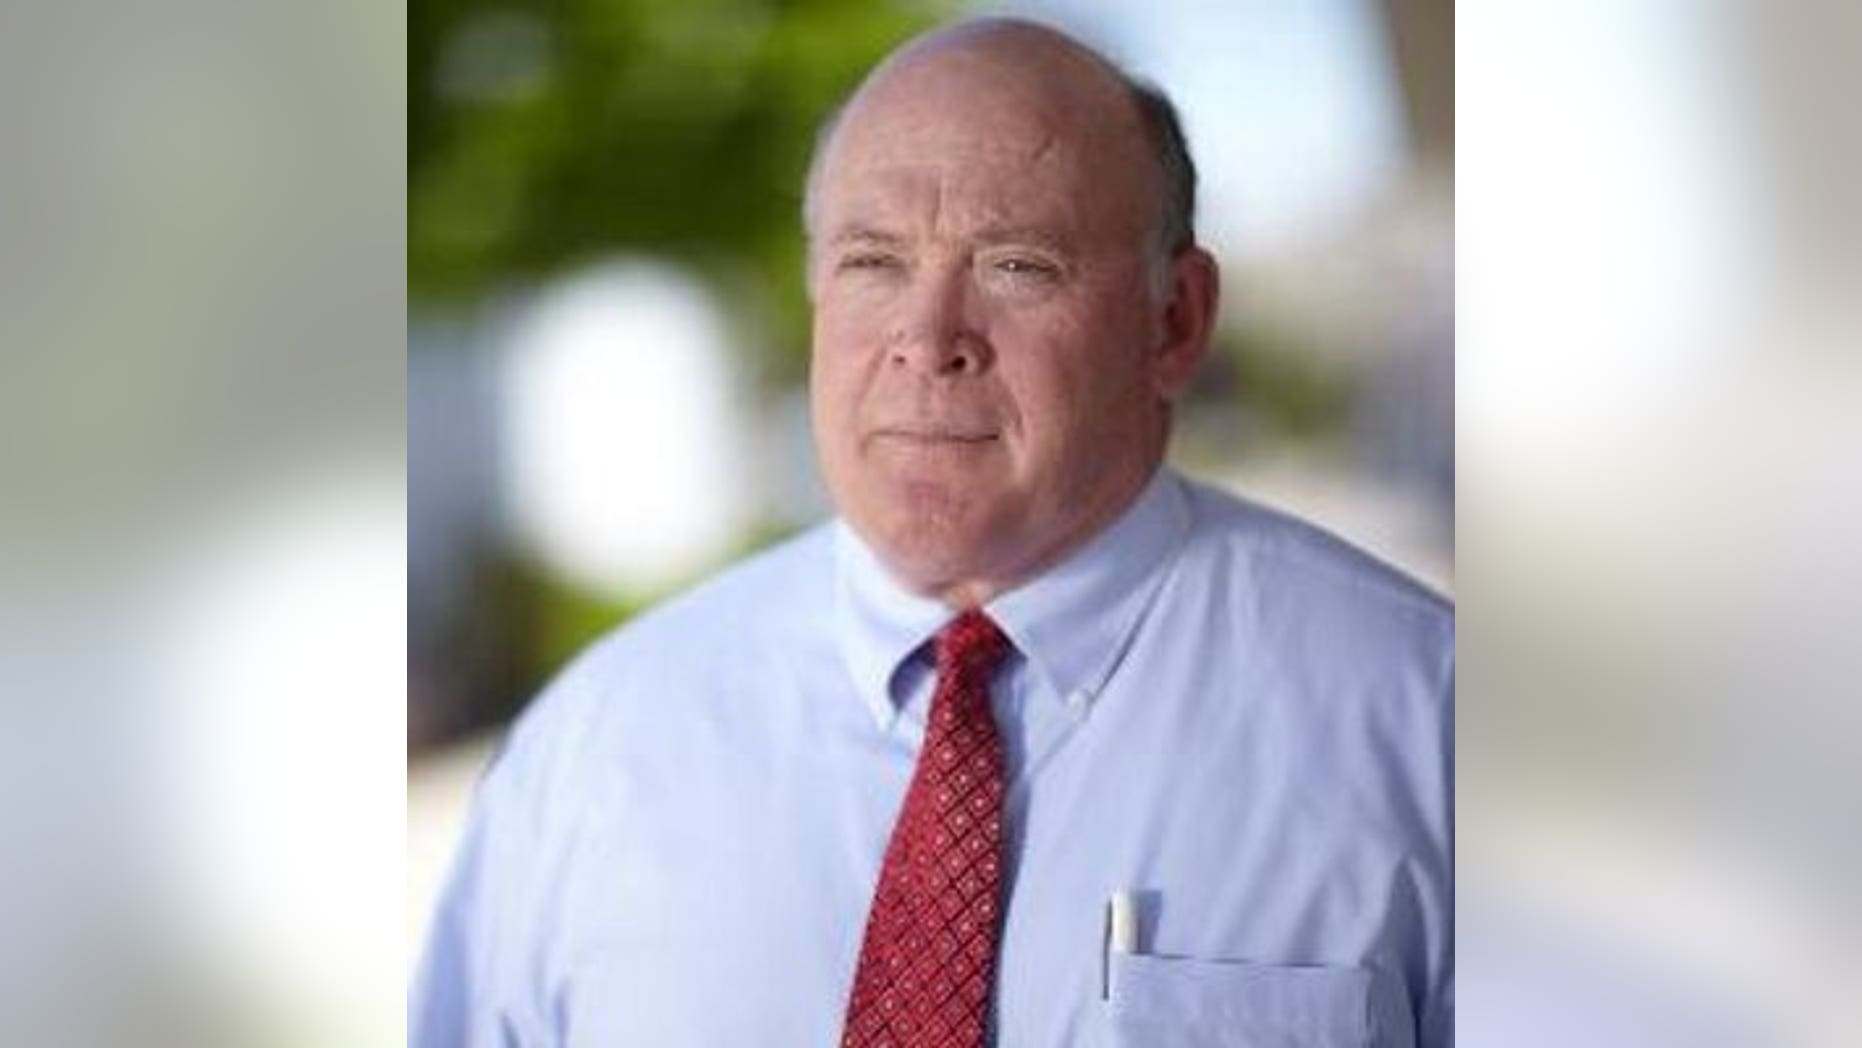 First District Supervisor Robert Lovingood is proposing arming county workers.